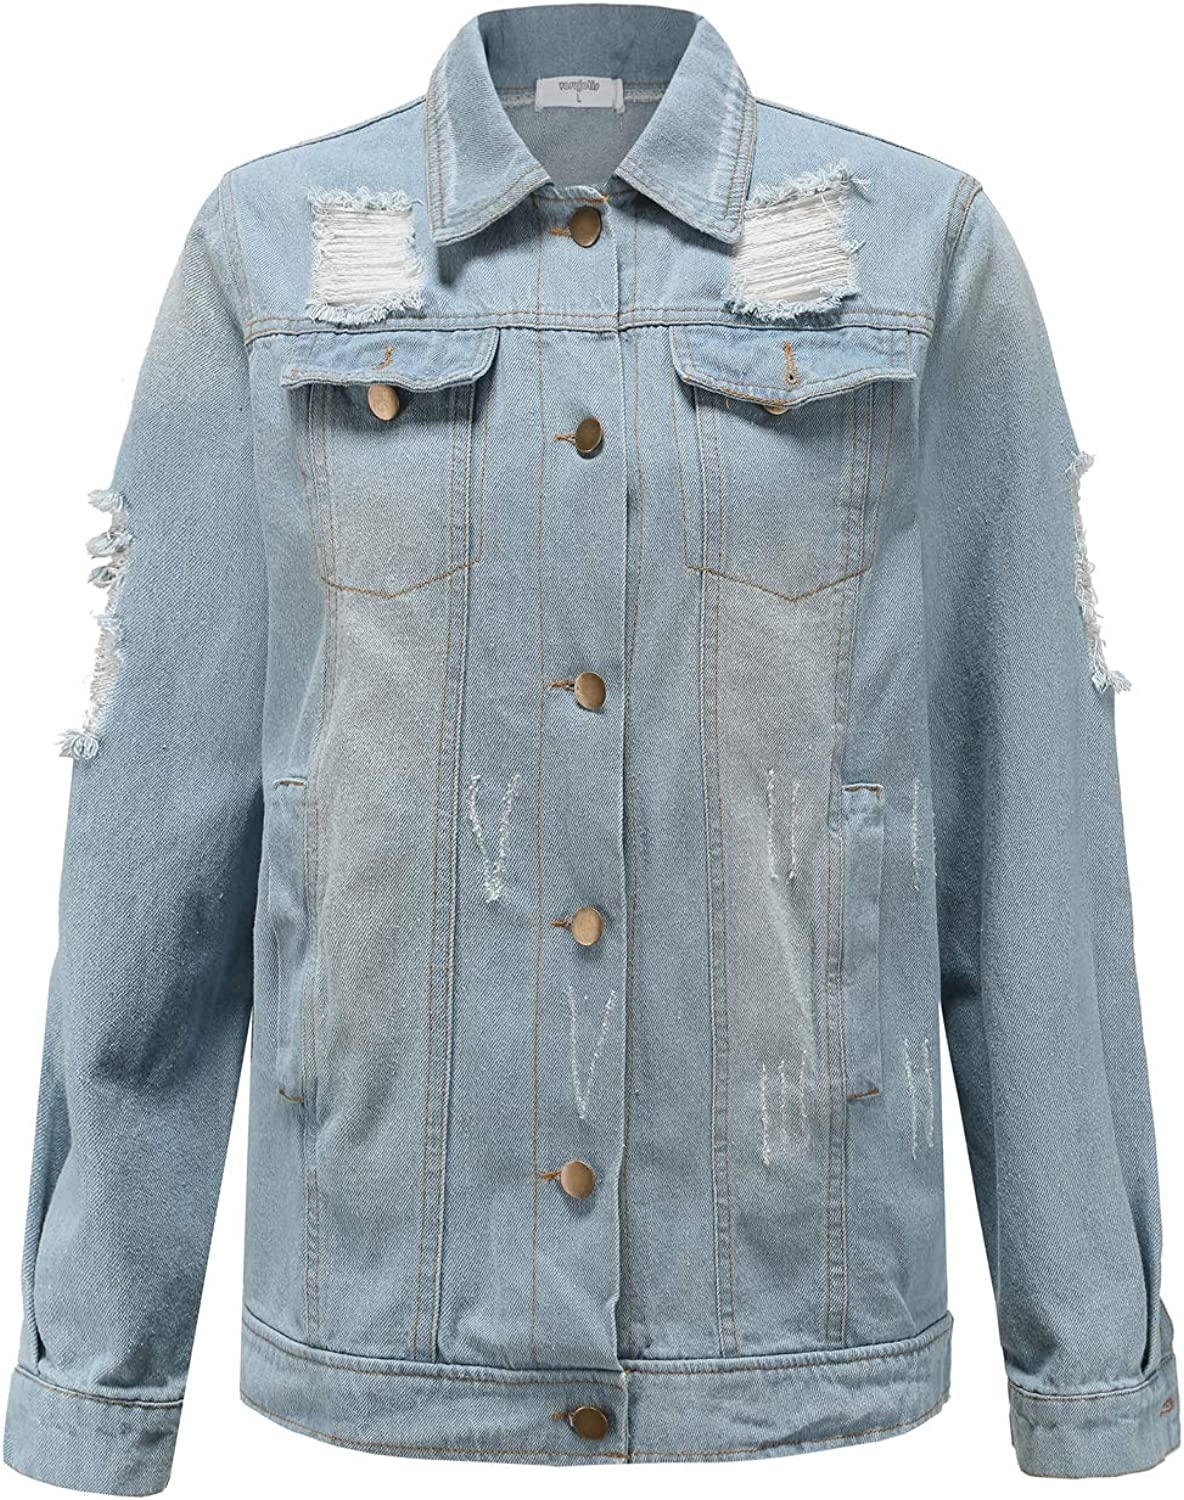 Vosujotis Women Distressed Denim Jackets Button Down Long Sleeve Ripped Jean Jacket Coats